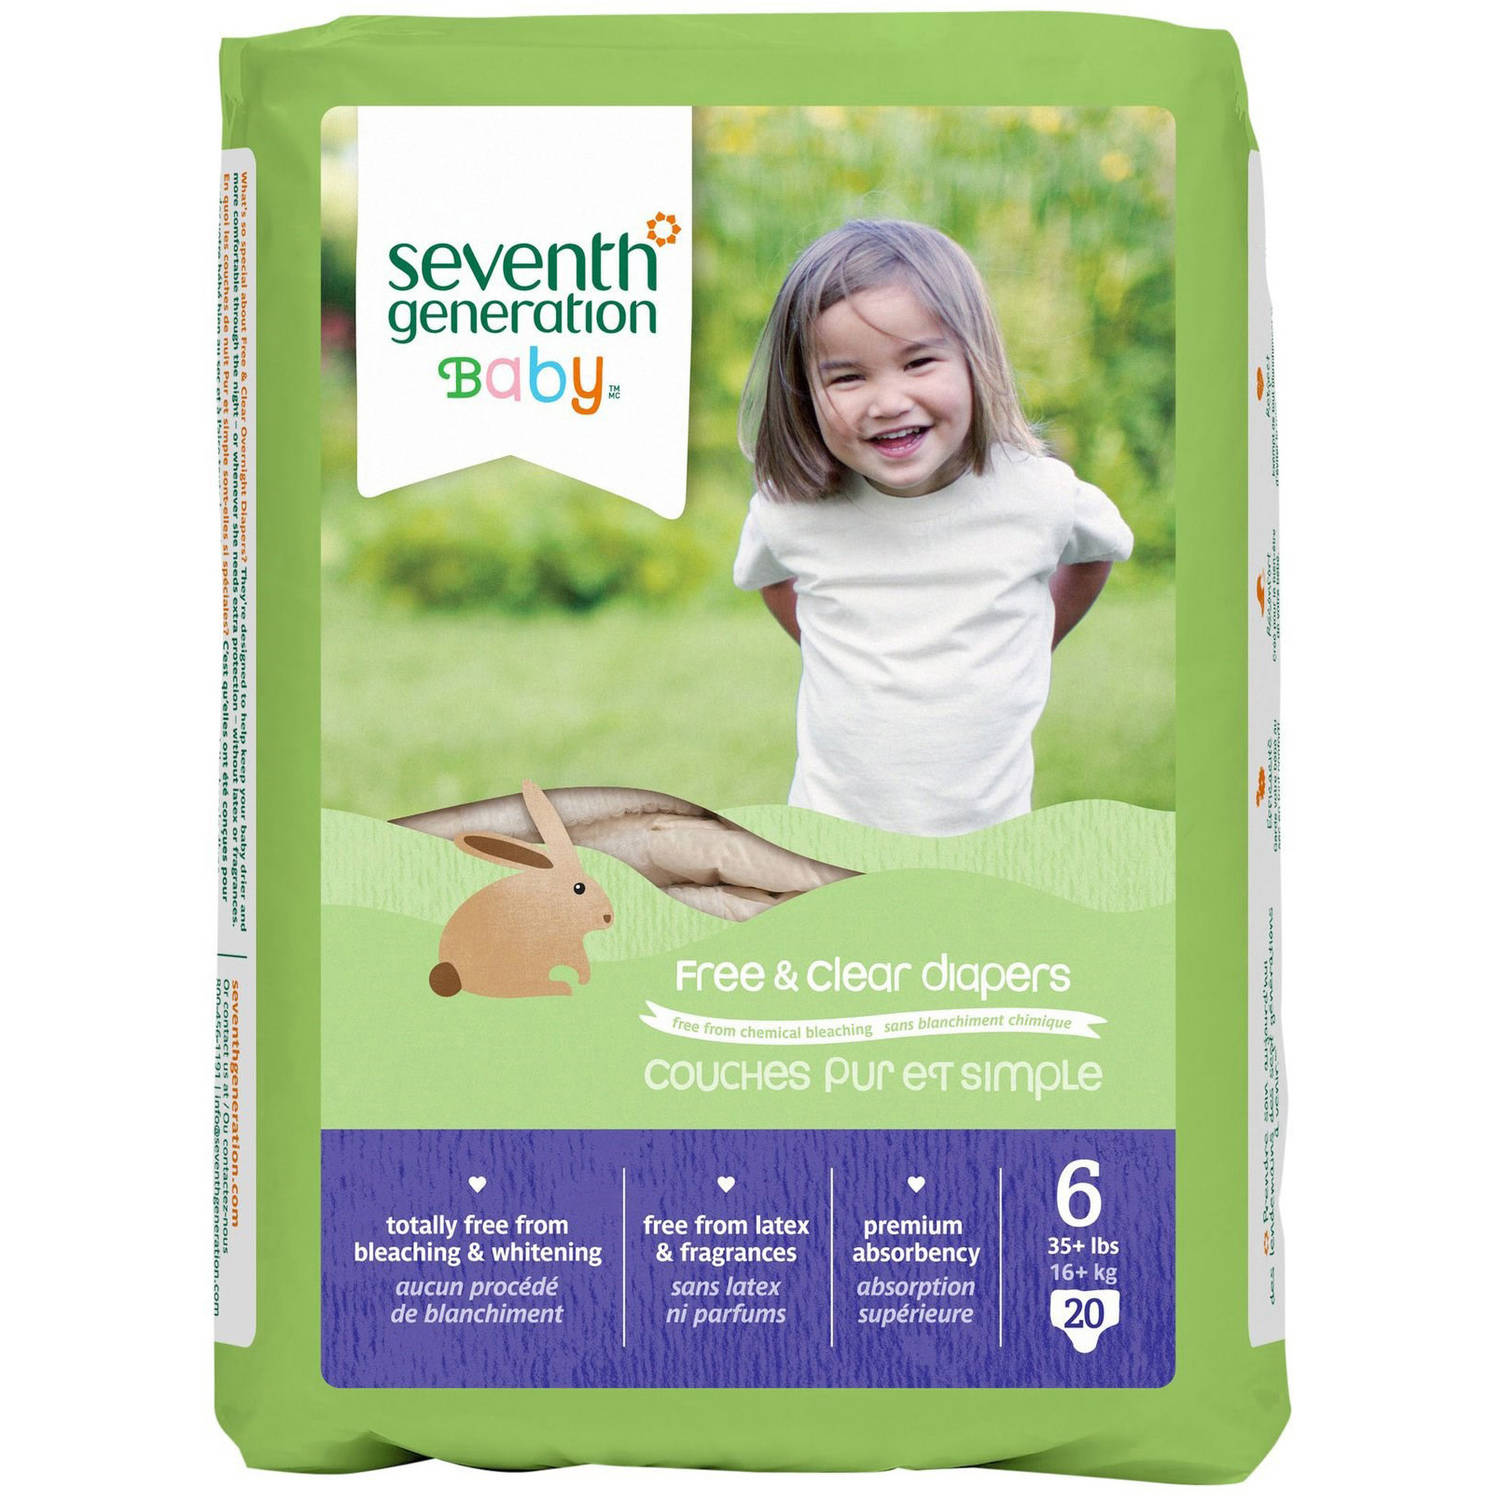 Seventh Generation Free & Clear Diapers, Size 6, 20 Diapers